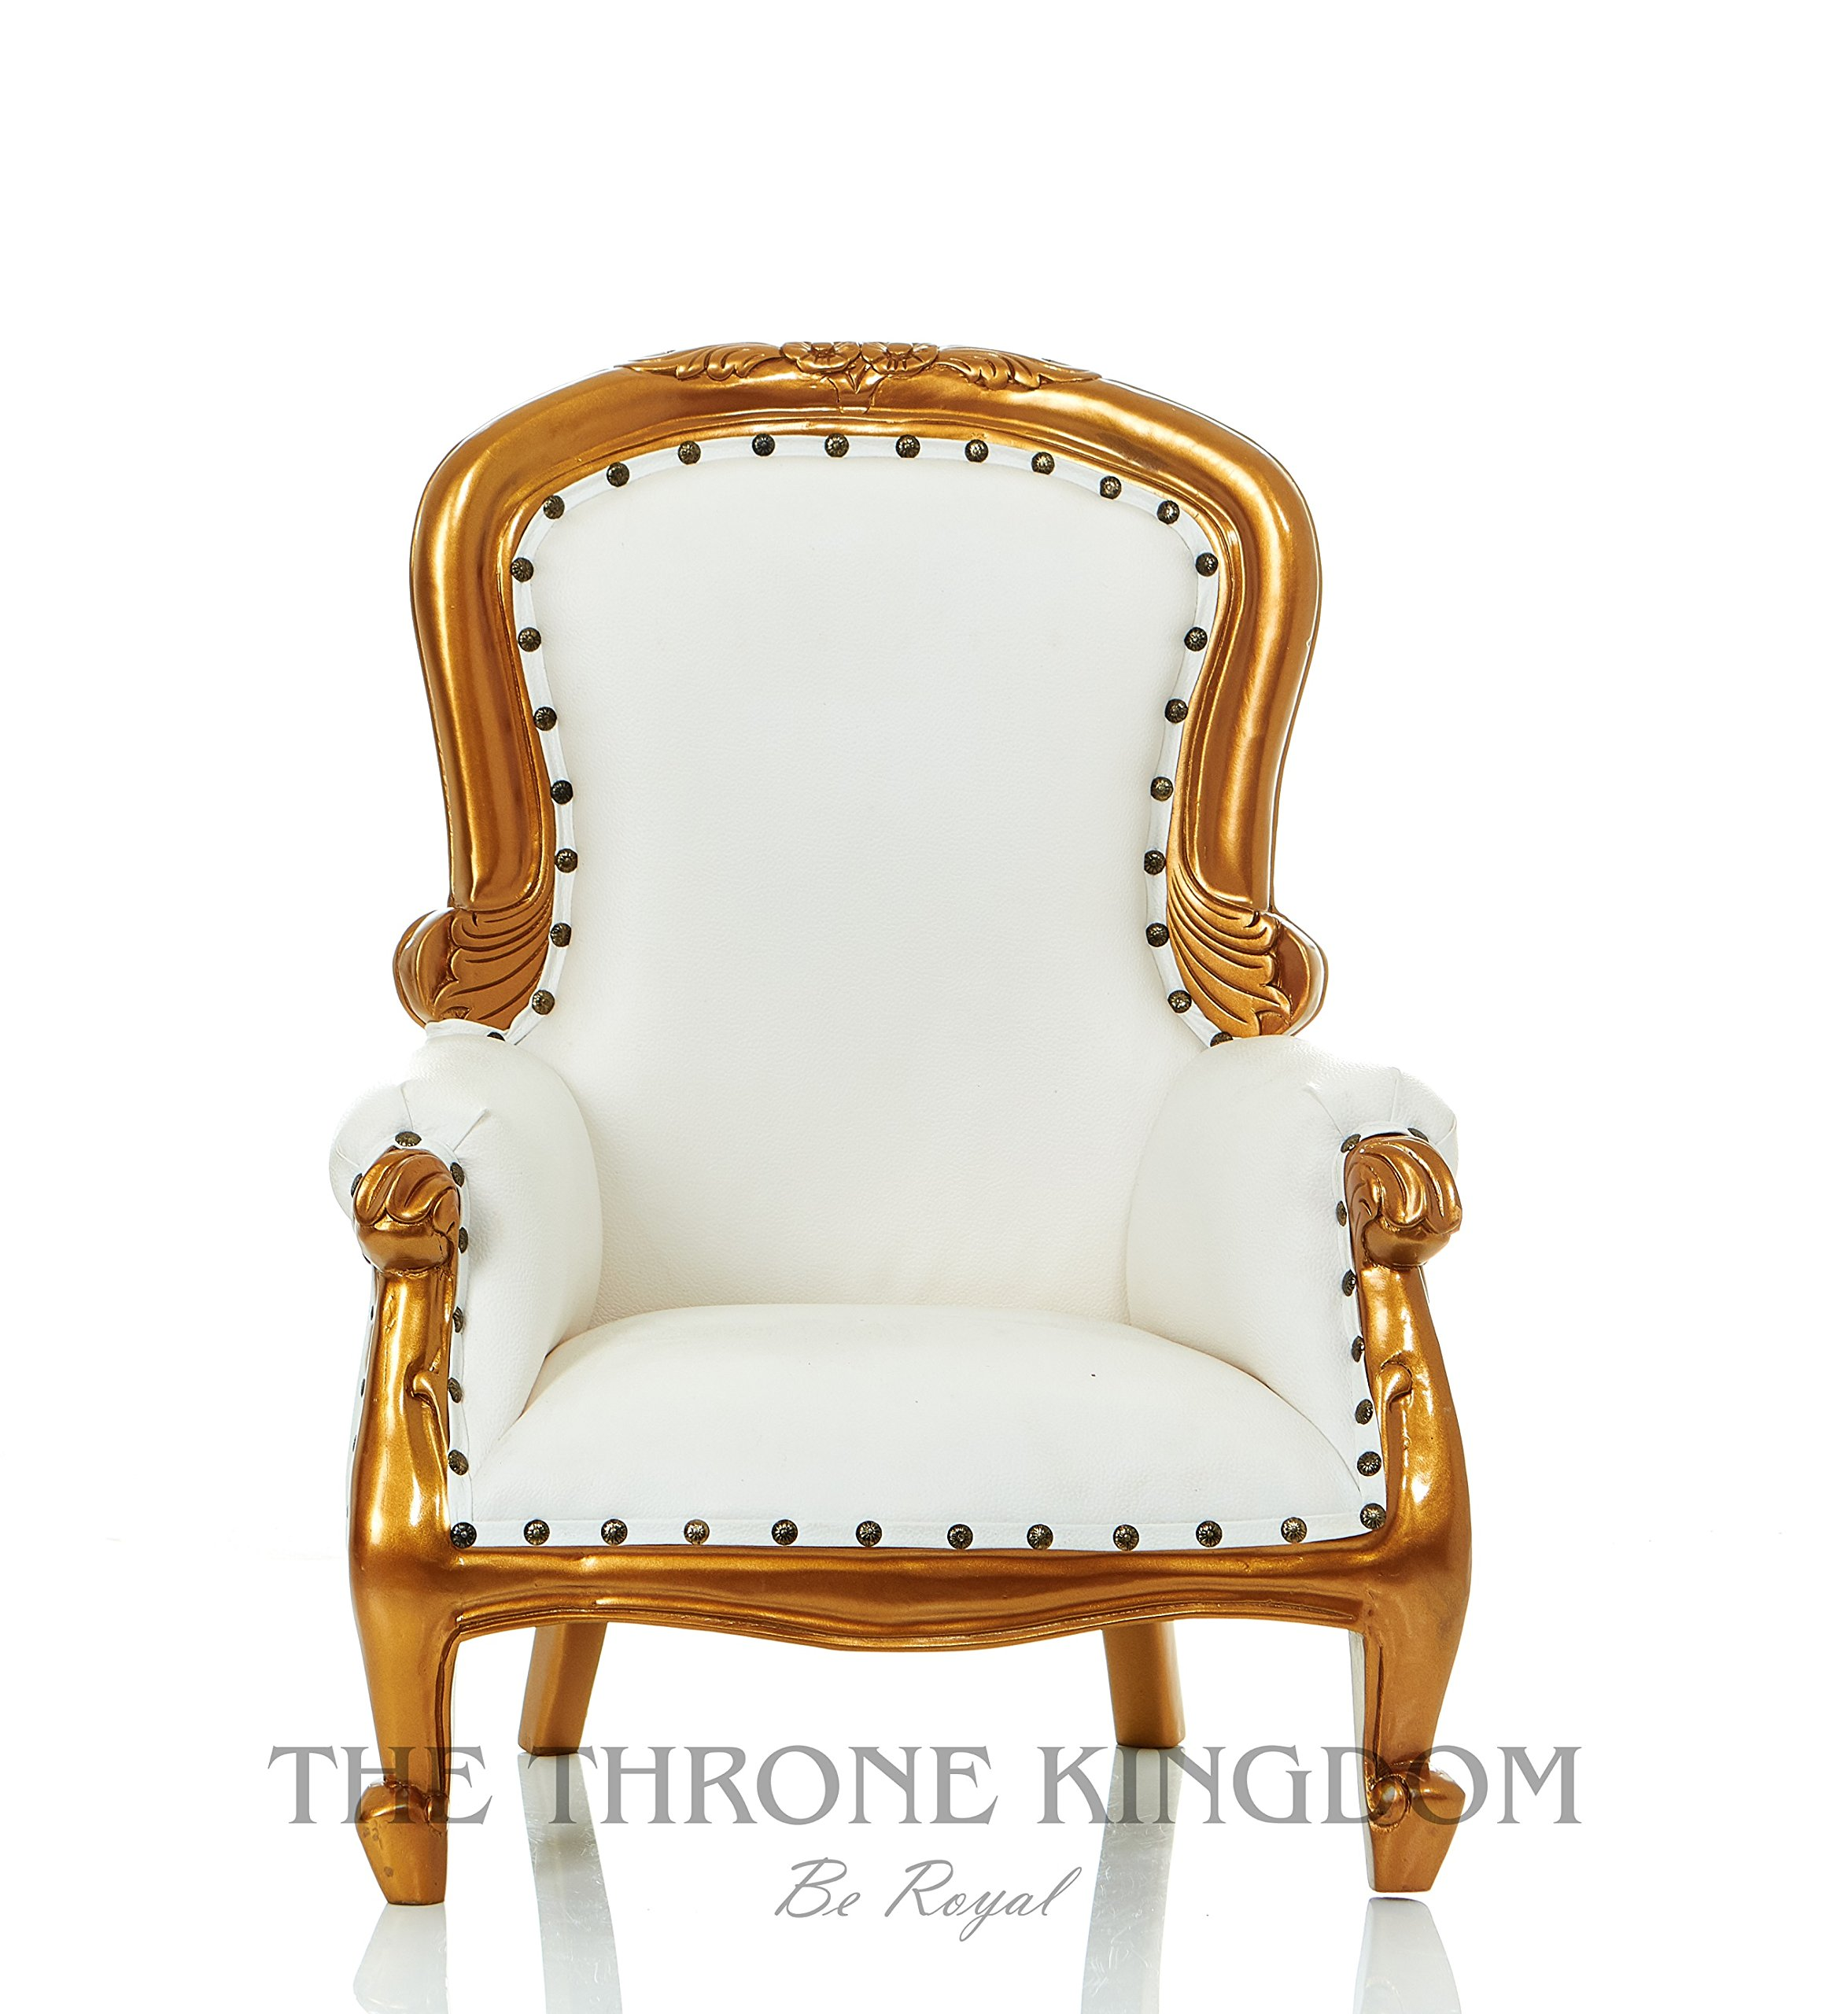 Ethan Mini Mahogany Children Baby Carved Party Throne Chair Armchair White with Gold Leaf